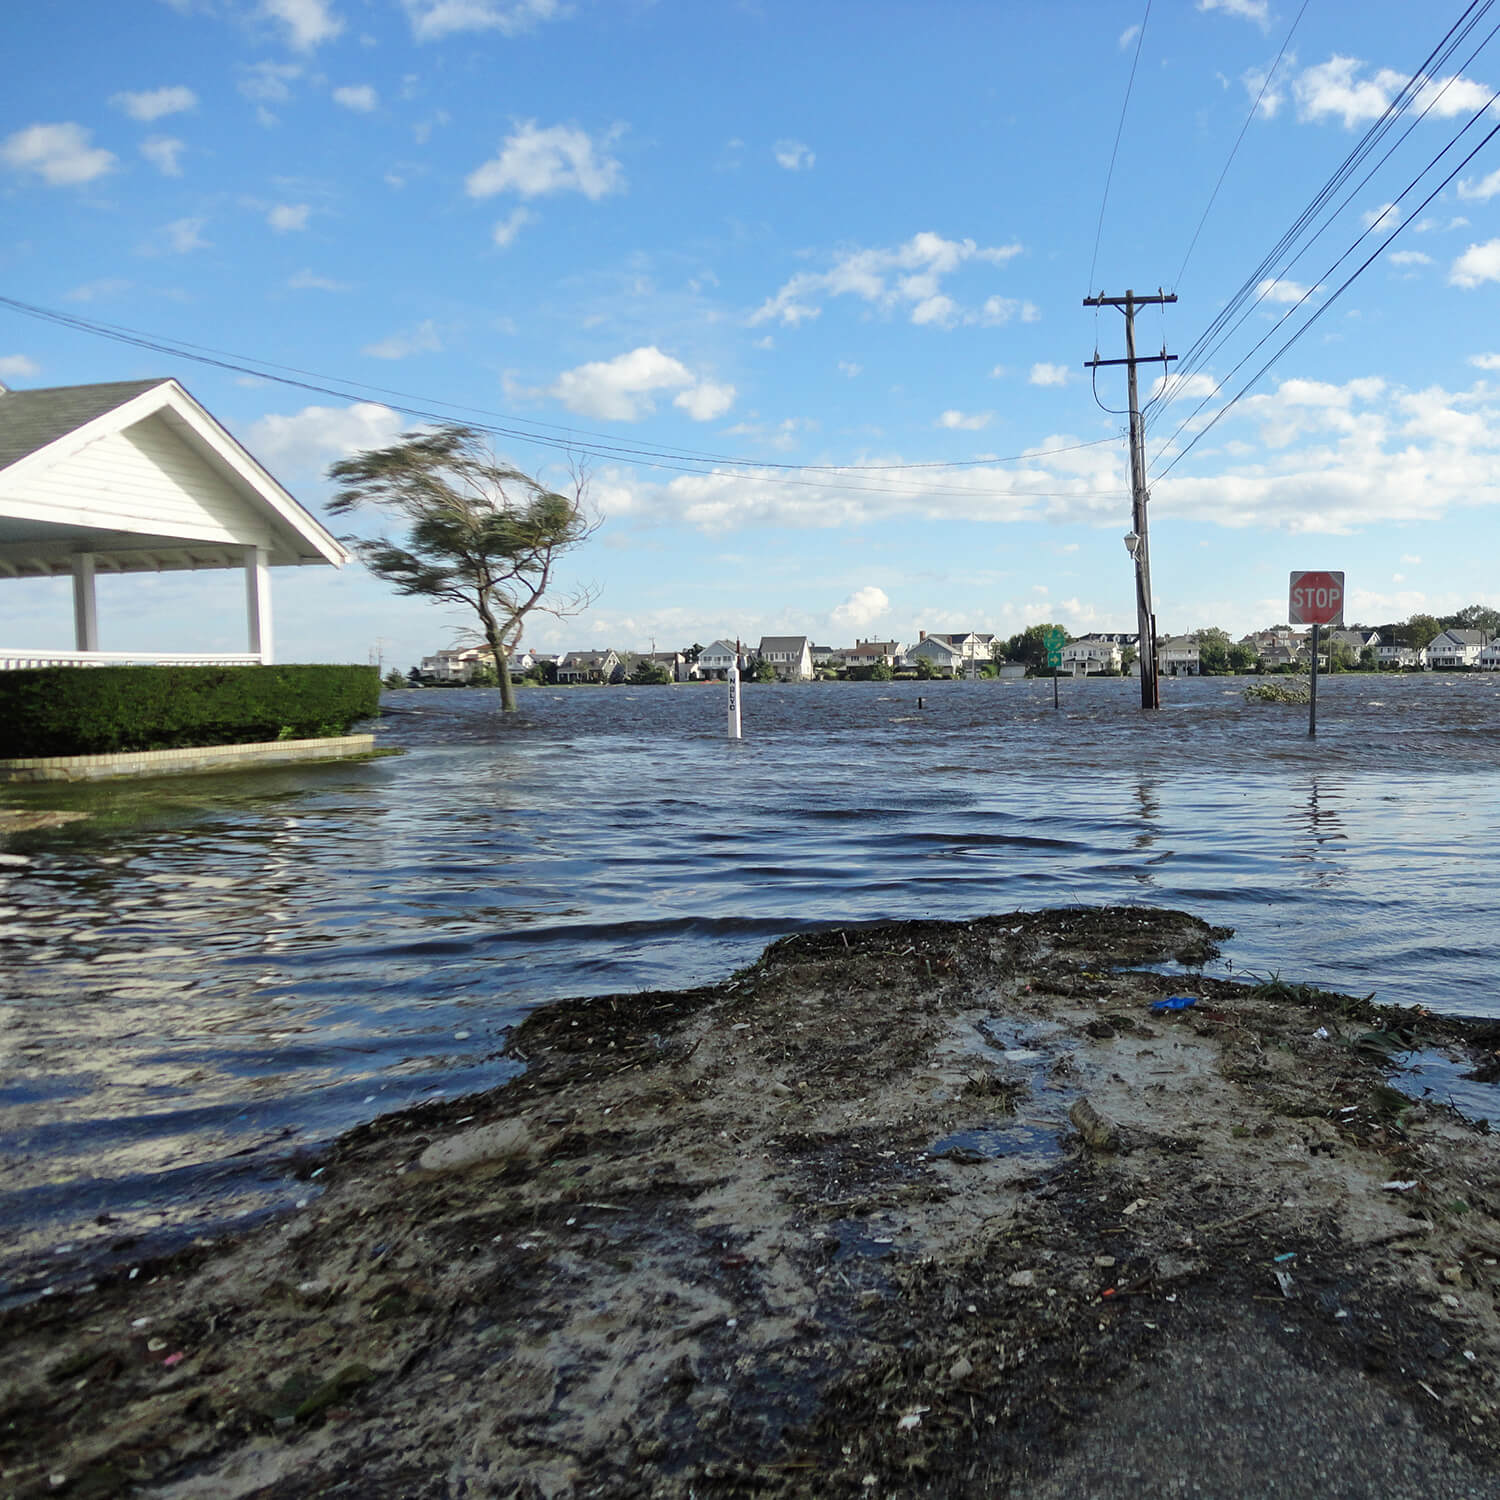 Photo shows stormwater runoff pollution at the Jersey Shore